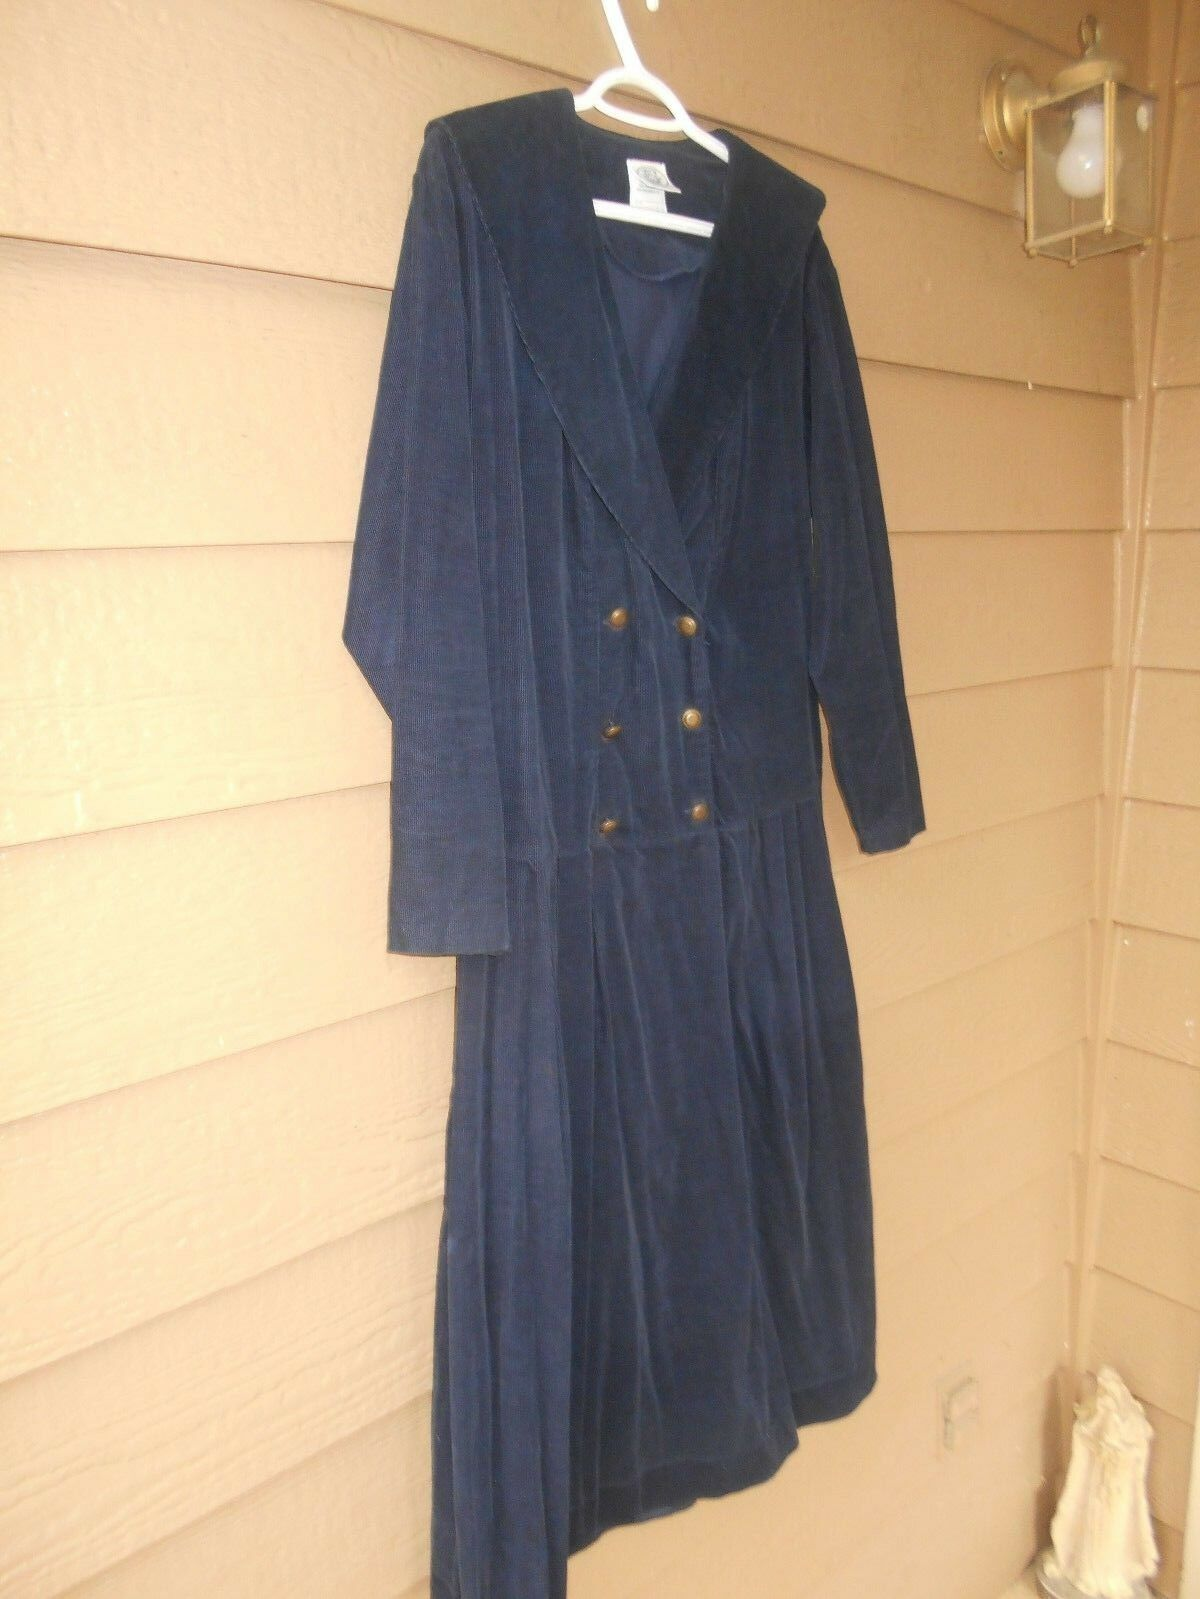 Vintage Laura Ashley Navy bluee Women's Dress 100% Cotton Size 12 Pre-Owned